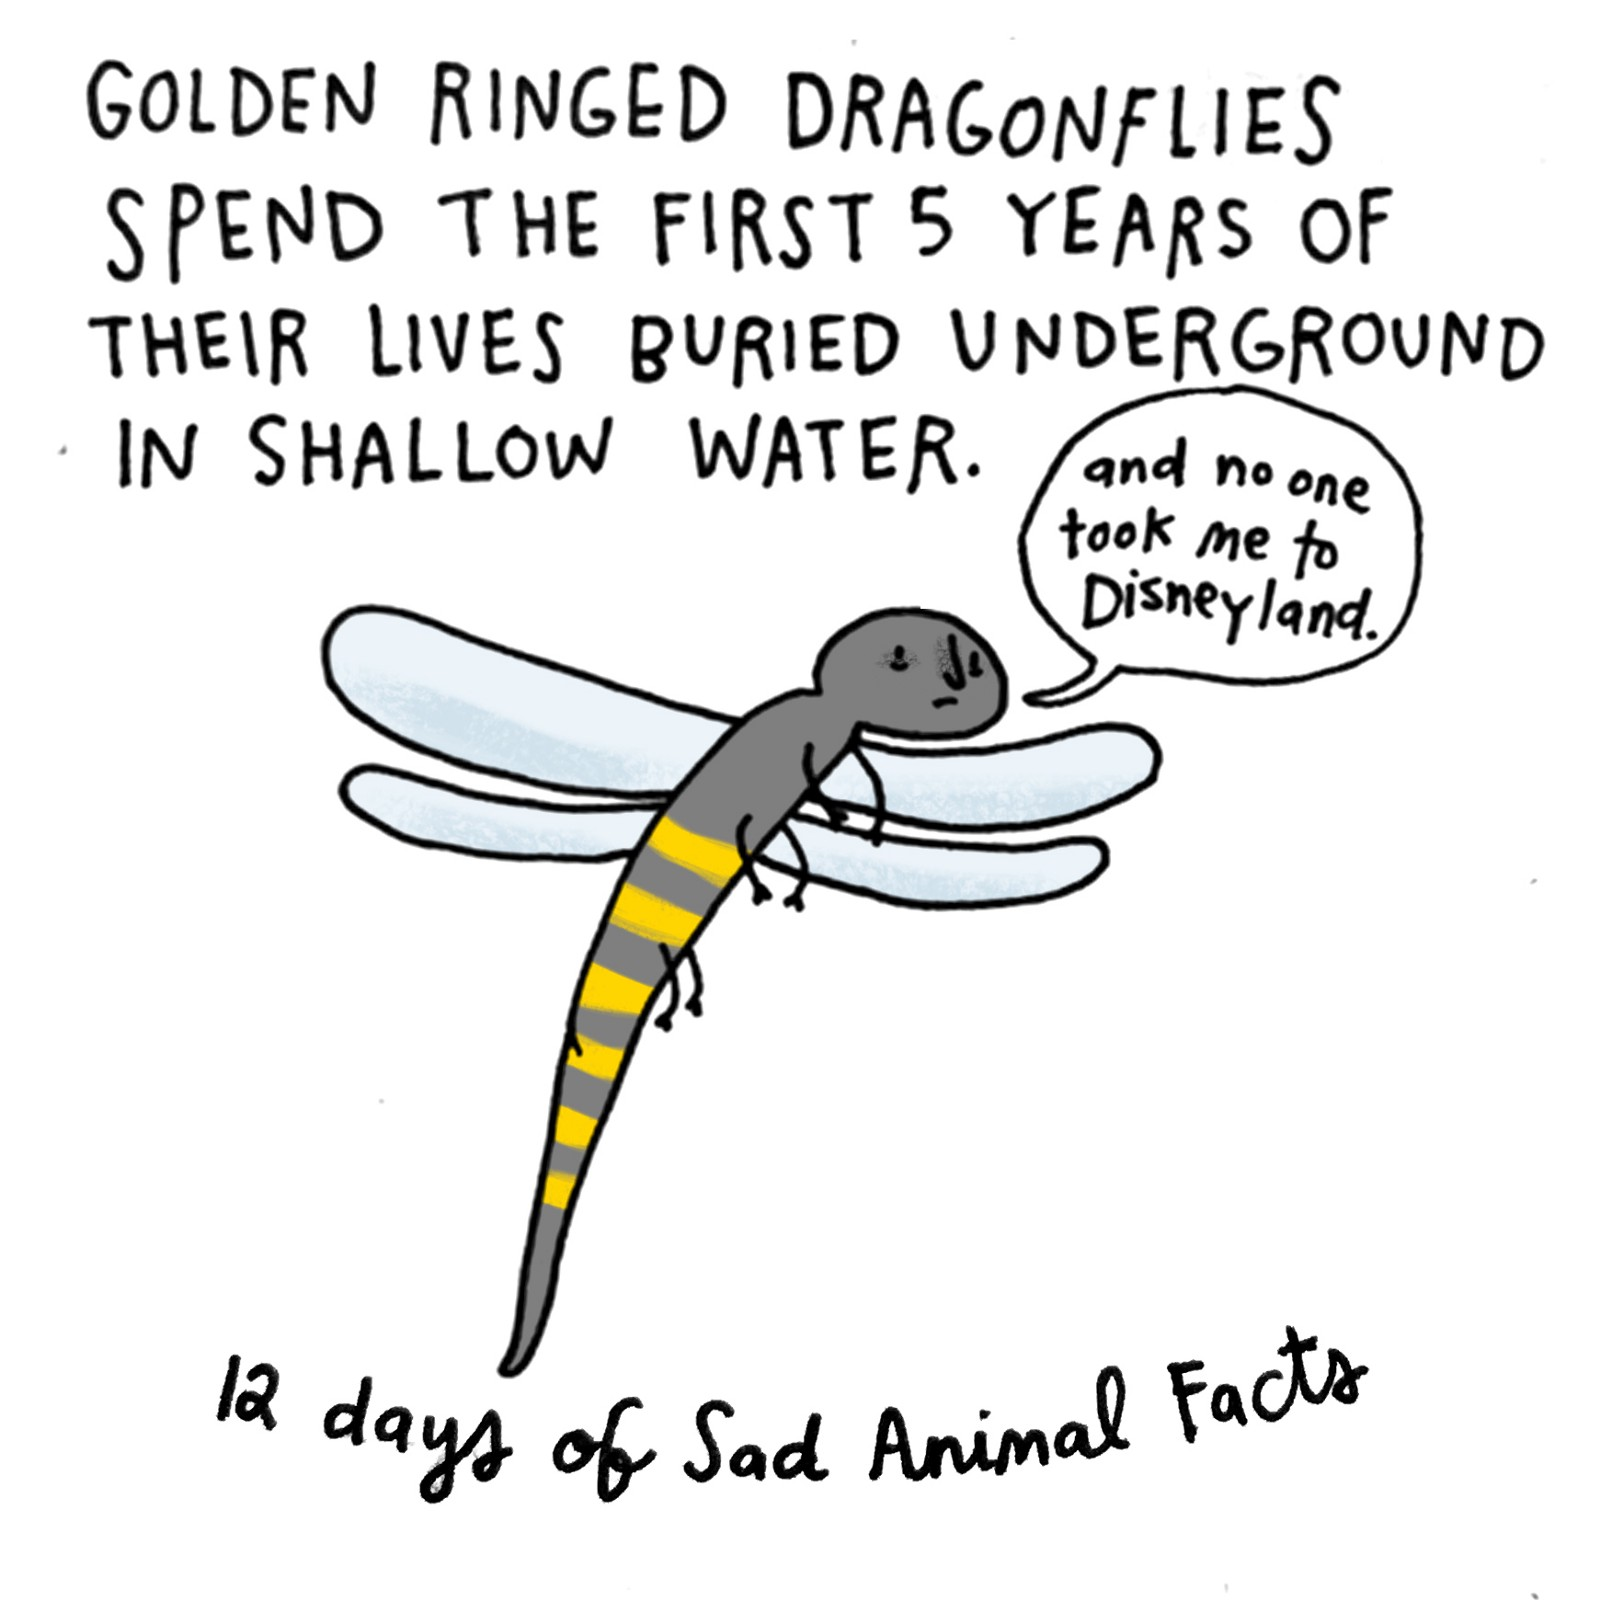 on the fifth day of christmas my true love gave to me a golden ringed insect with a deprived childhood